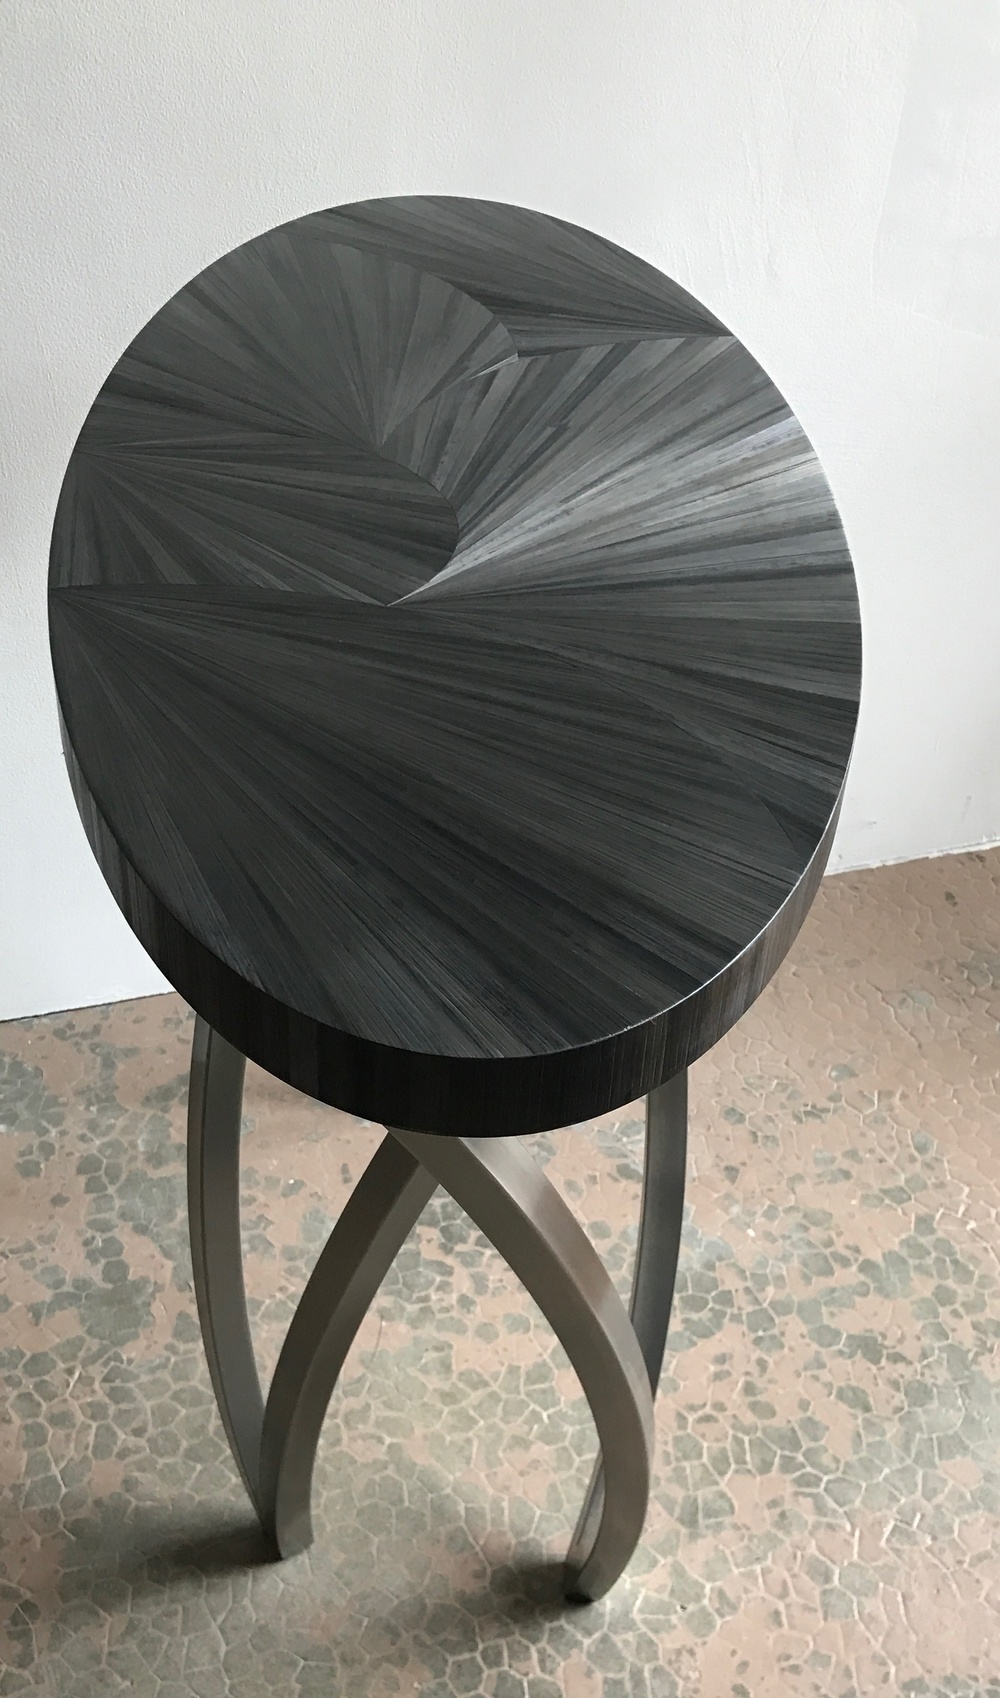 Master Artisans and Artists to Look For at MO 2019 - Valerie Colas des Francs - Console maison et objet Master Artisans and Artists to Look For at Maison et Objet 2019 Master Artisans and Artists to Look For at Maison et Objet 2019 Valerie Colas des Francs Console